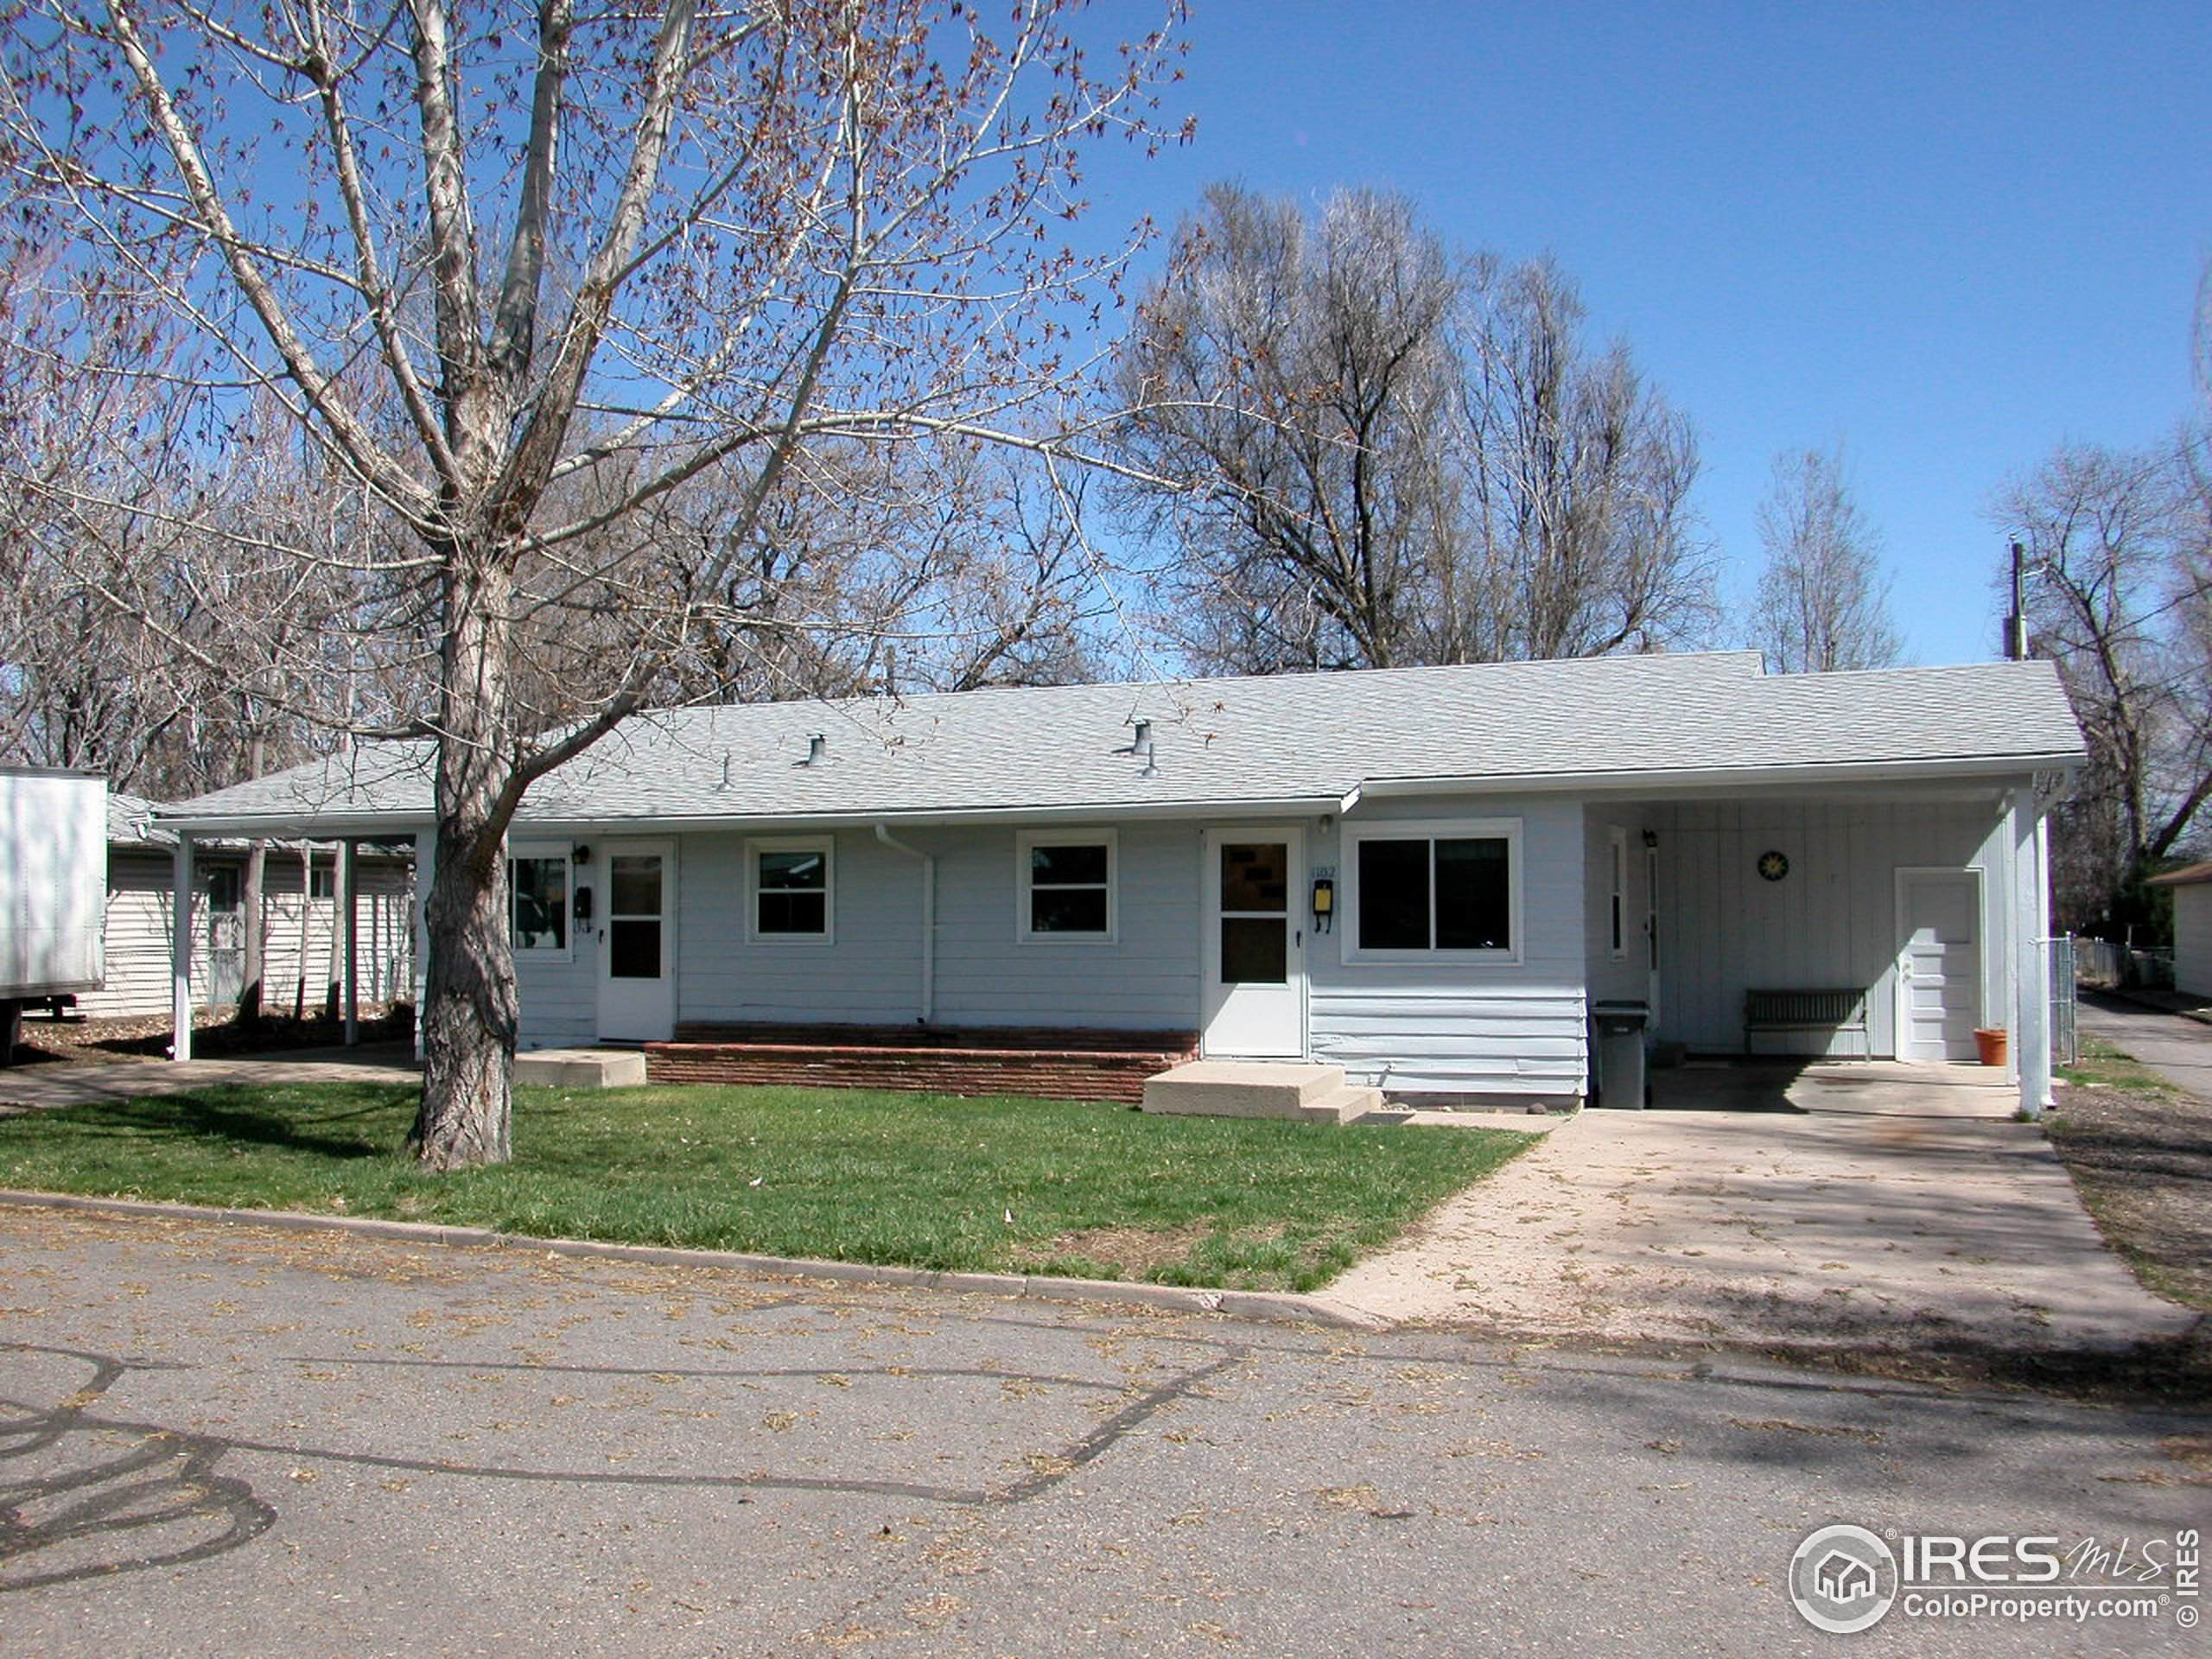 237 W Bryan St, Haxtun, CO 80731 (#937449) :: Mile High Luxury Real Estate